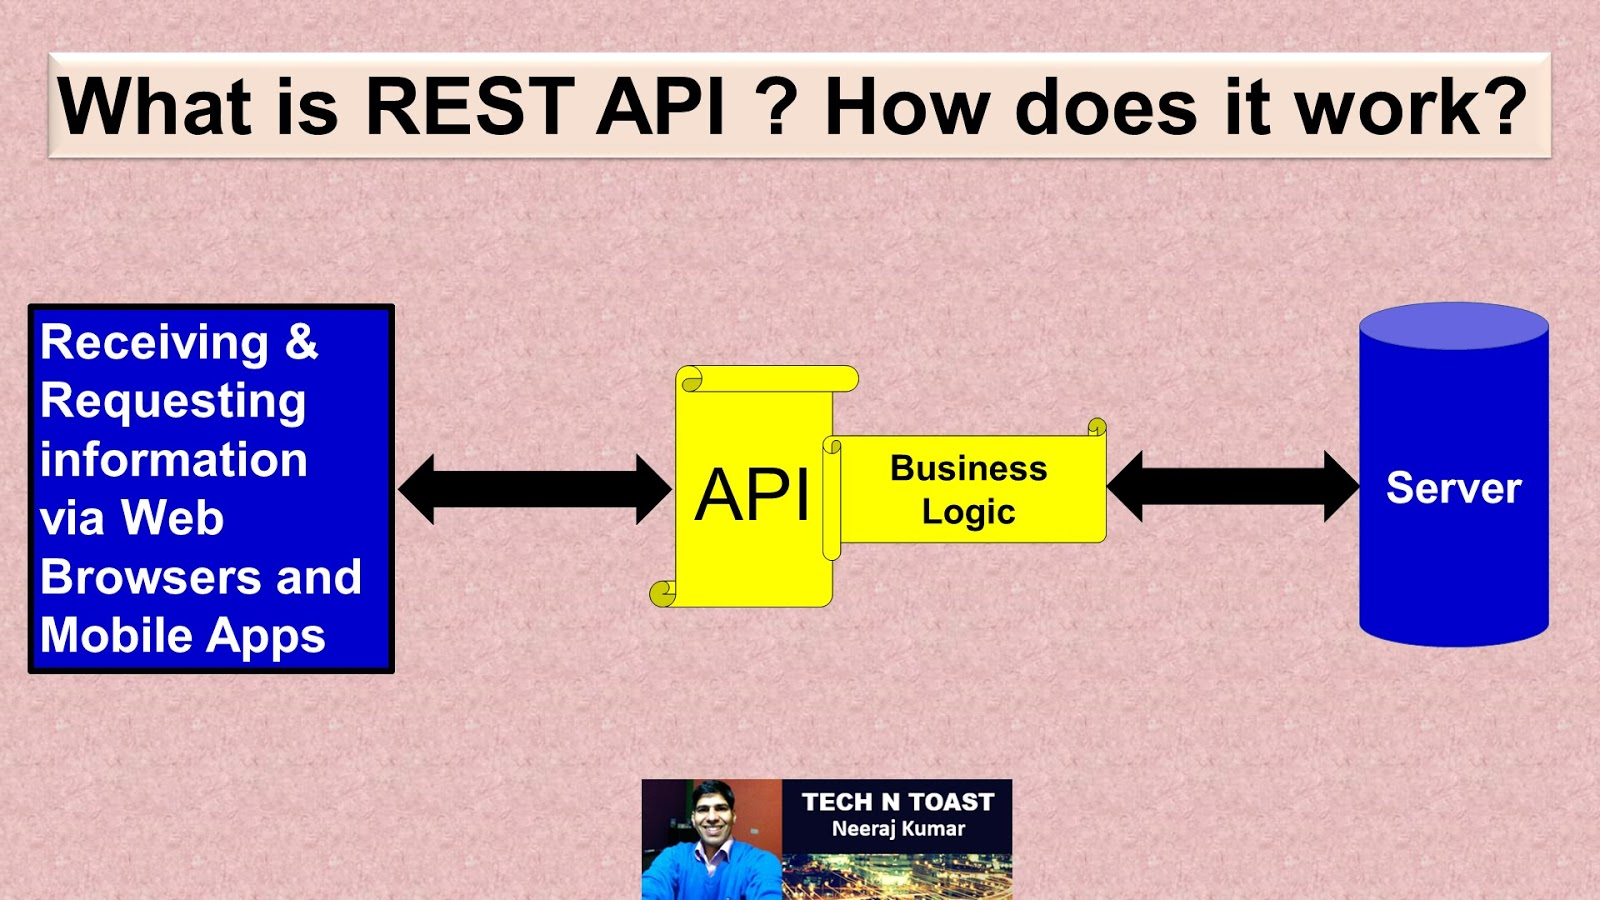 REST API - representational state transfer application programming interface